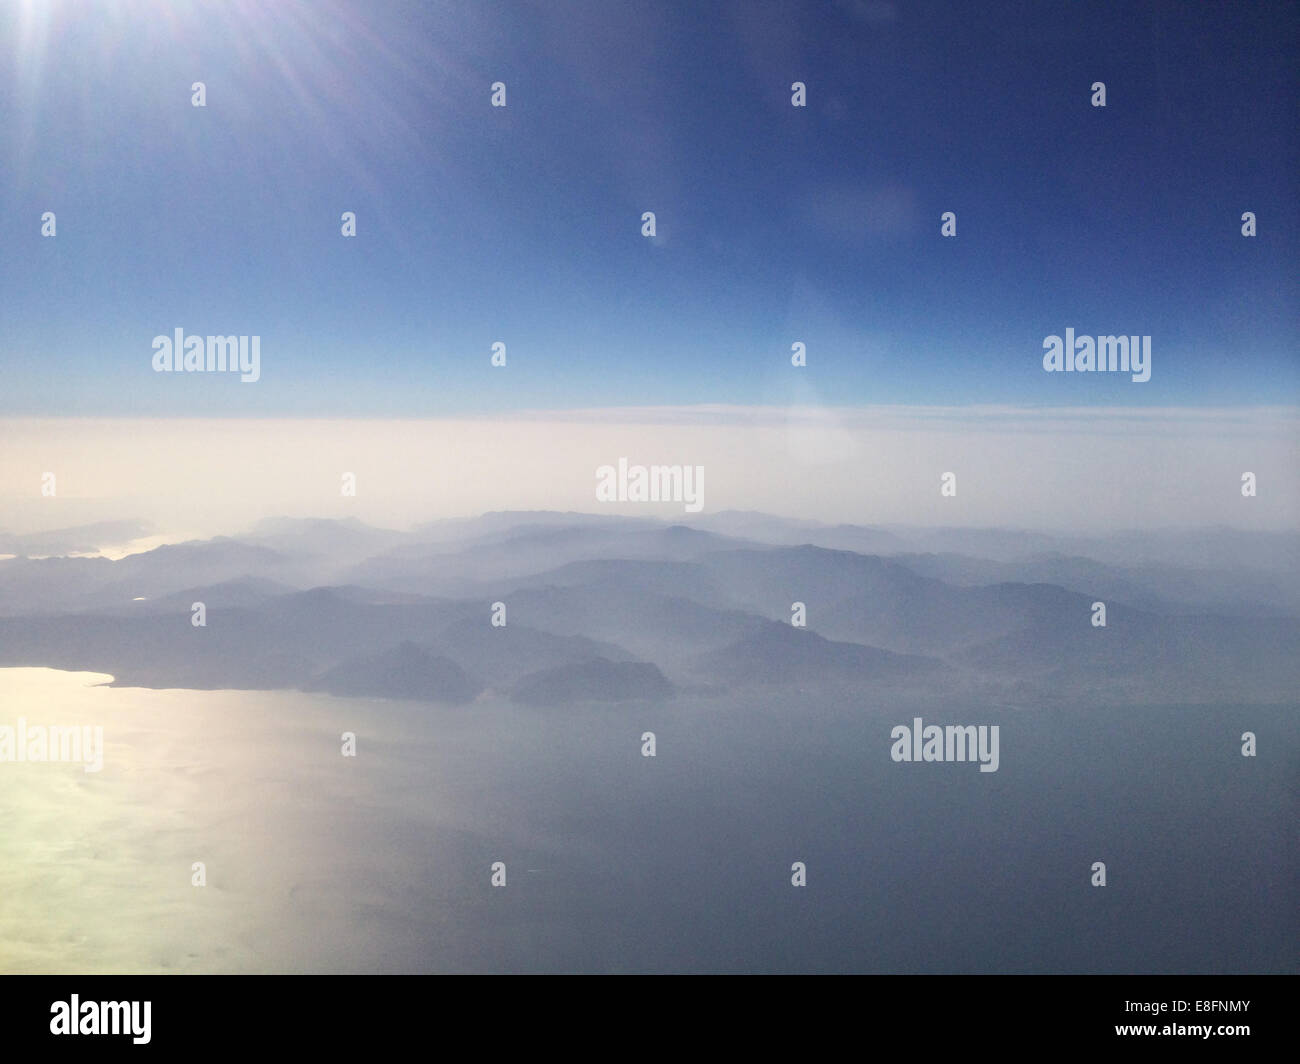 Aerial view of mountain range in early morning light - Stock Image